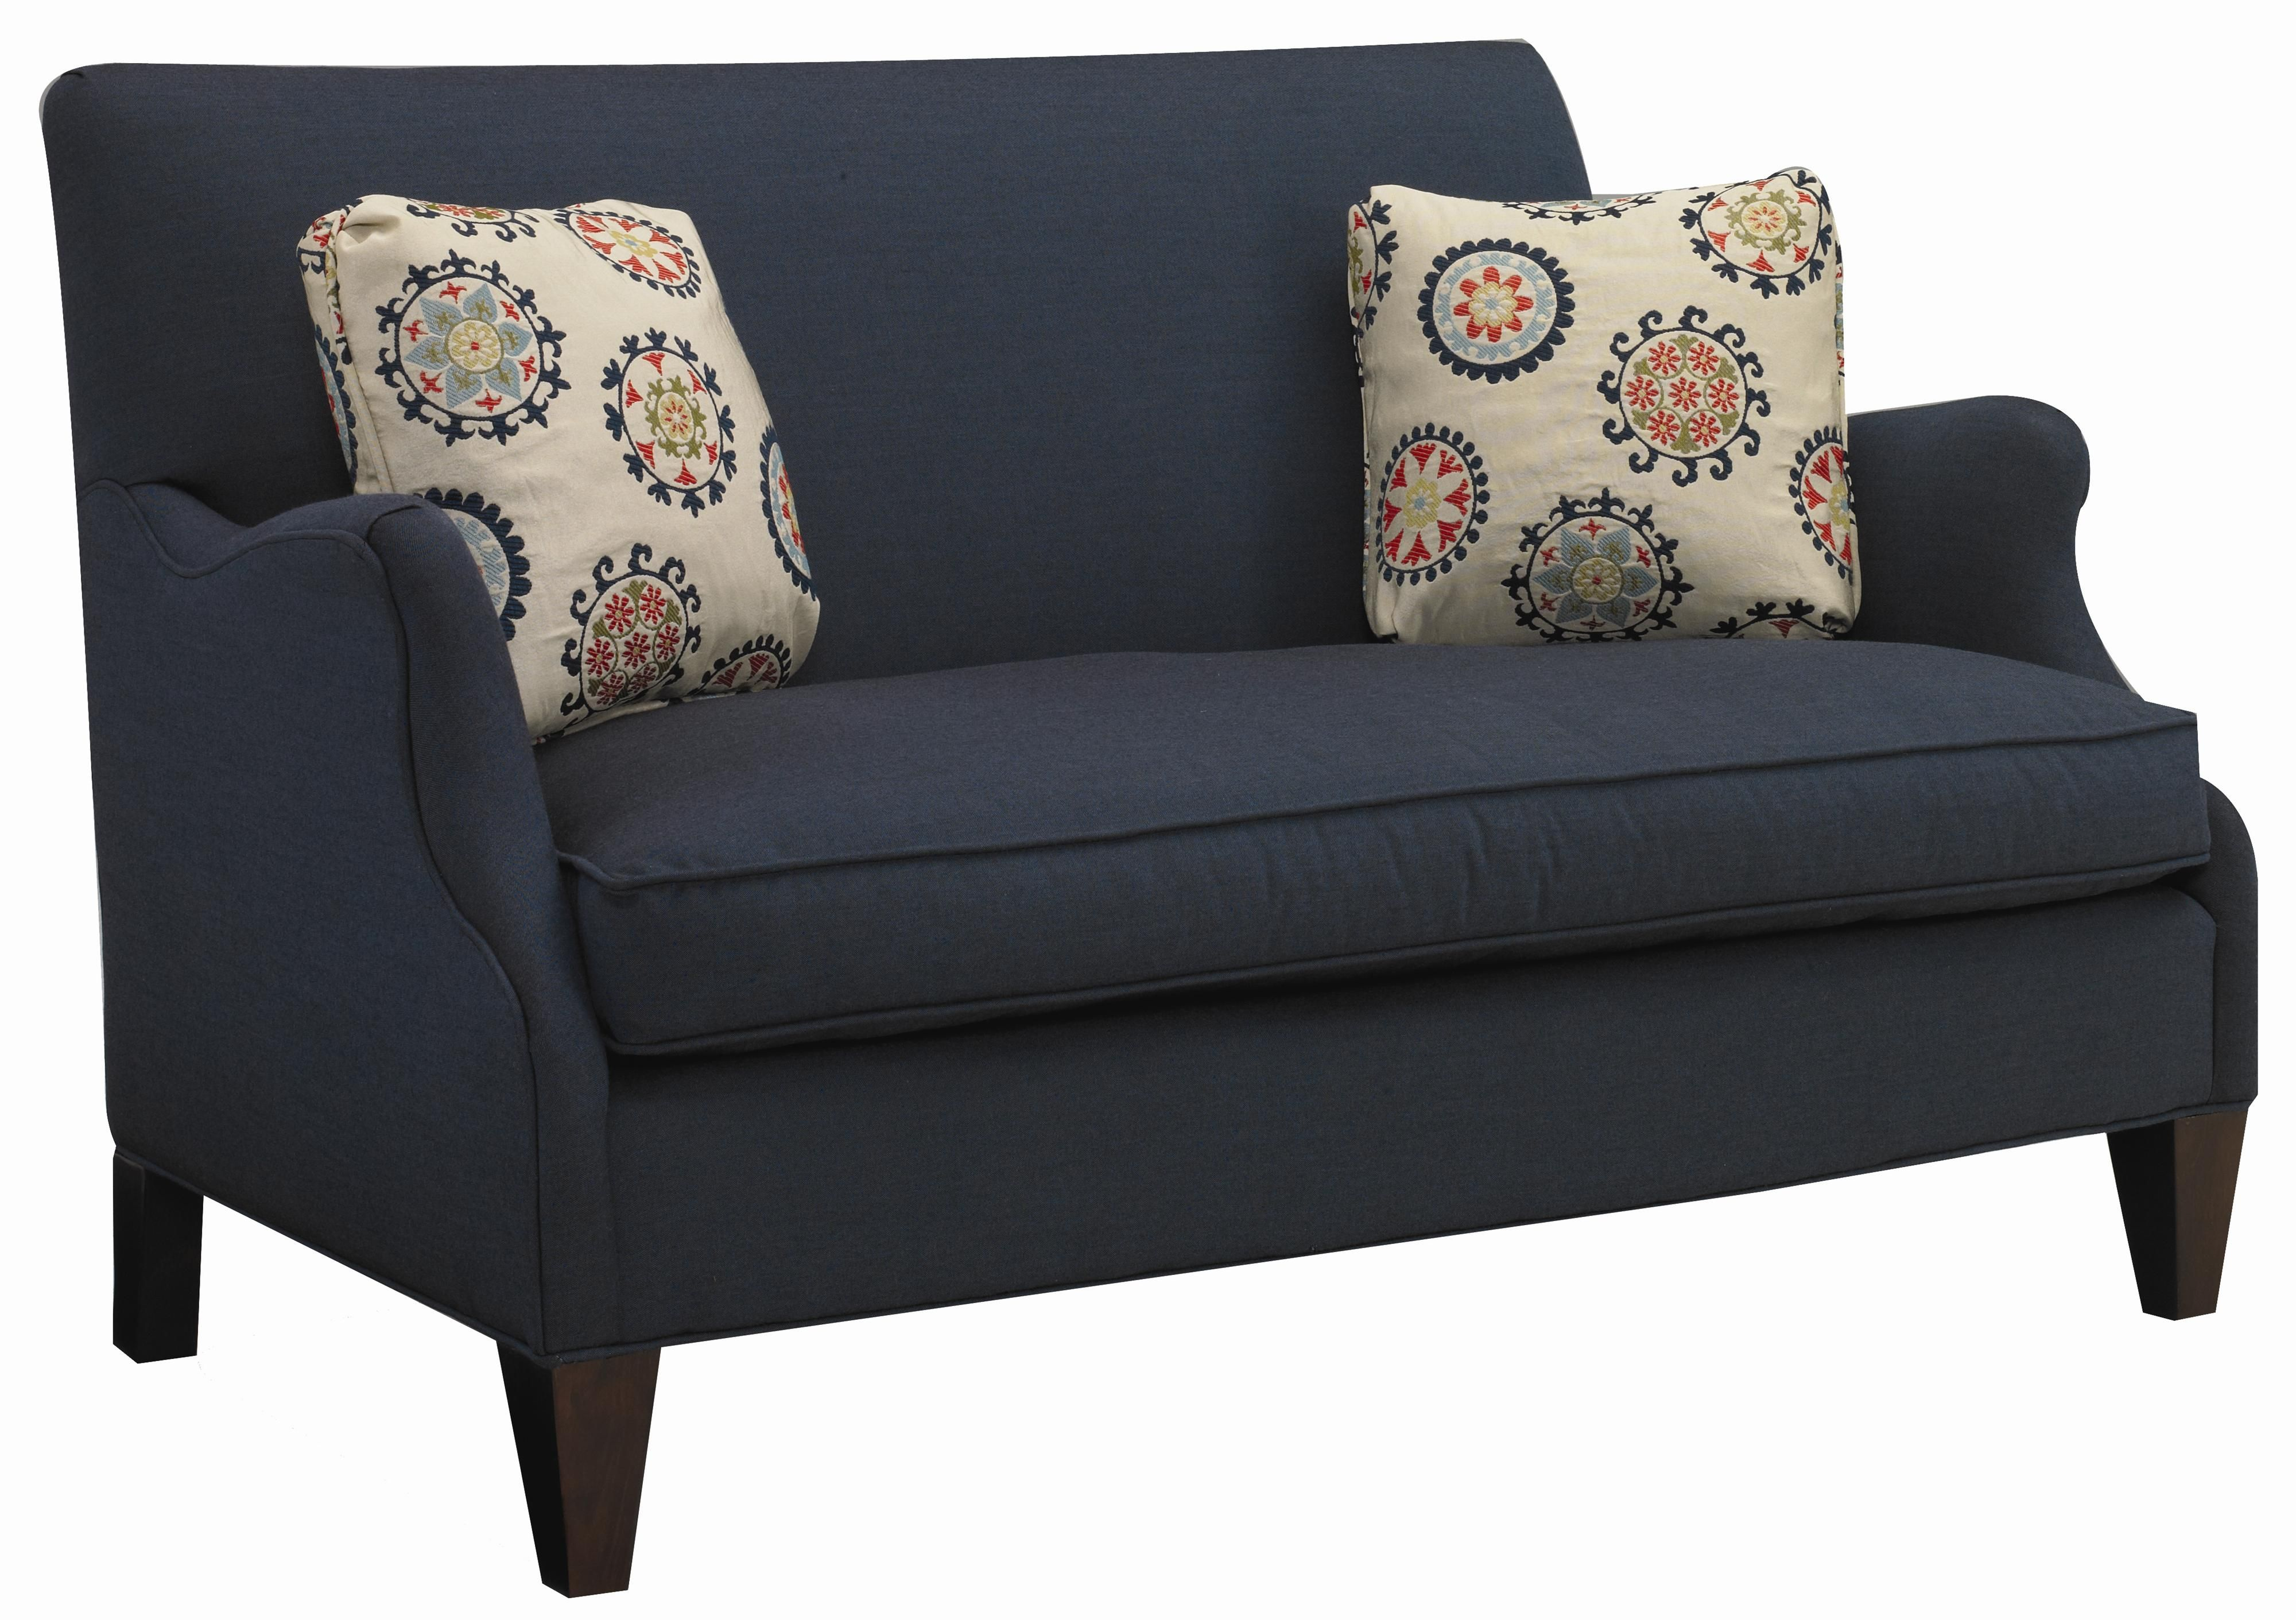 contemporary settee Contemporary Settee with Romantic